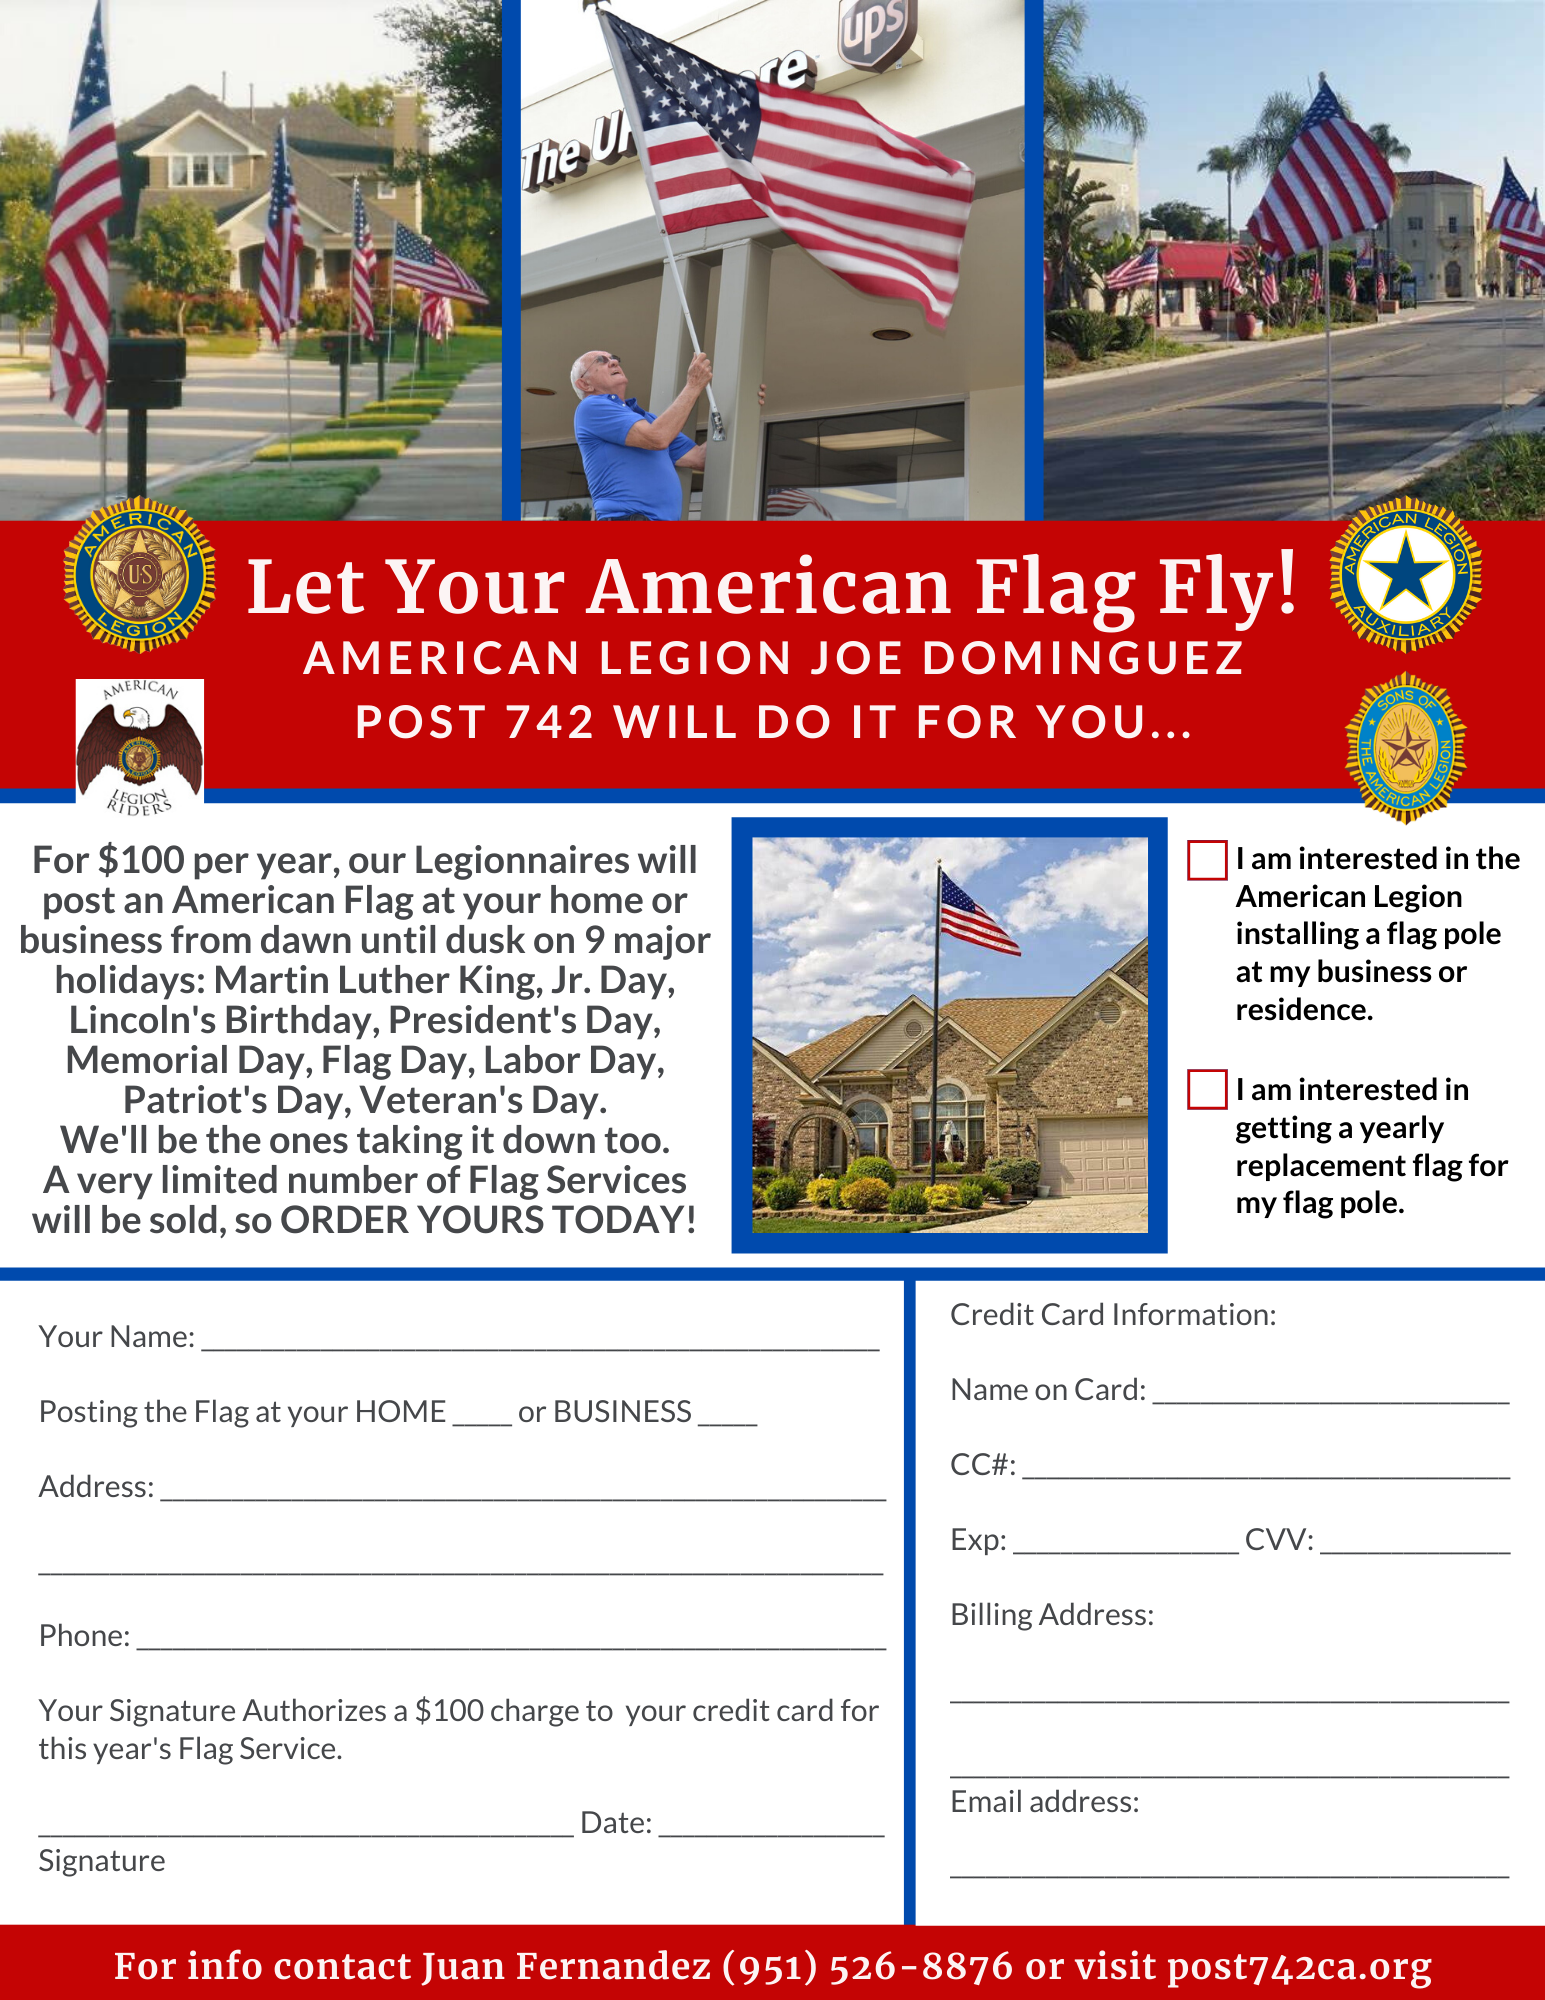 Let Your Americanism Fly!